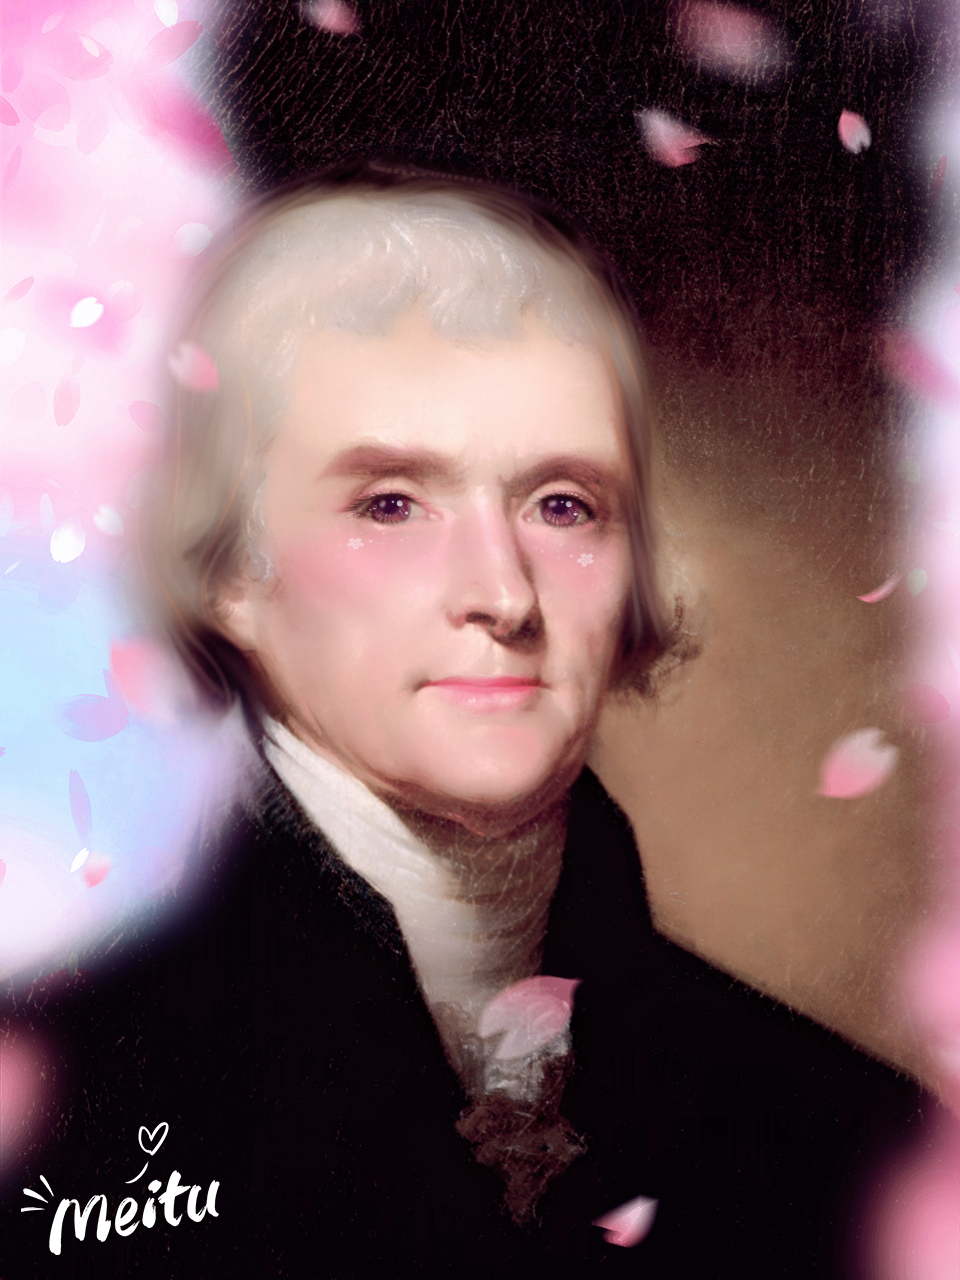 Thomas Jefferson, 3rd President